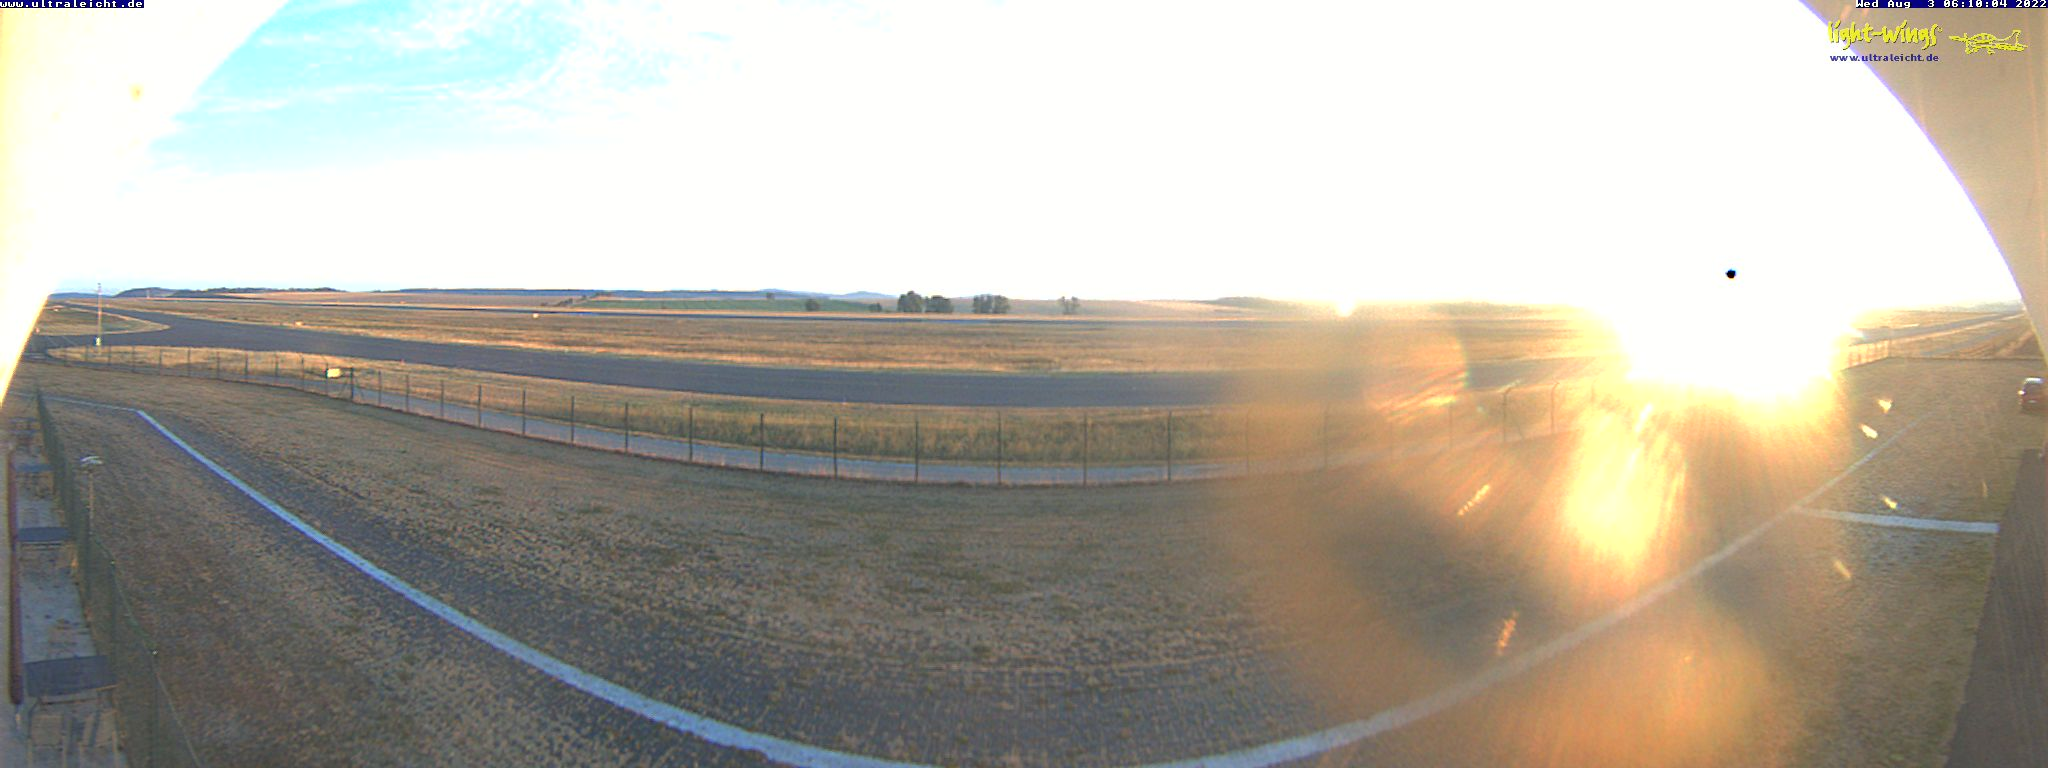 Kassel Airport [KSF] and Flight School, Panorama